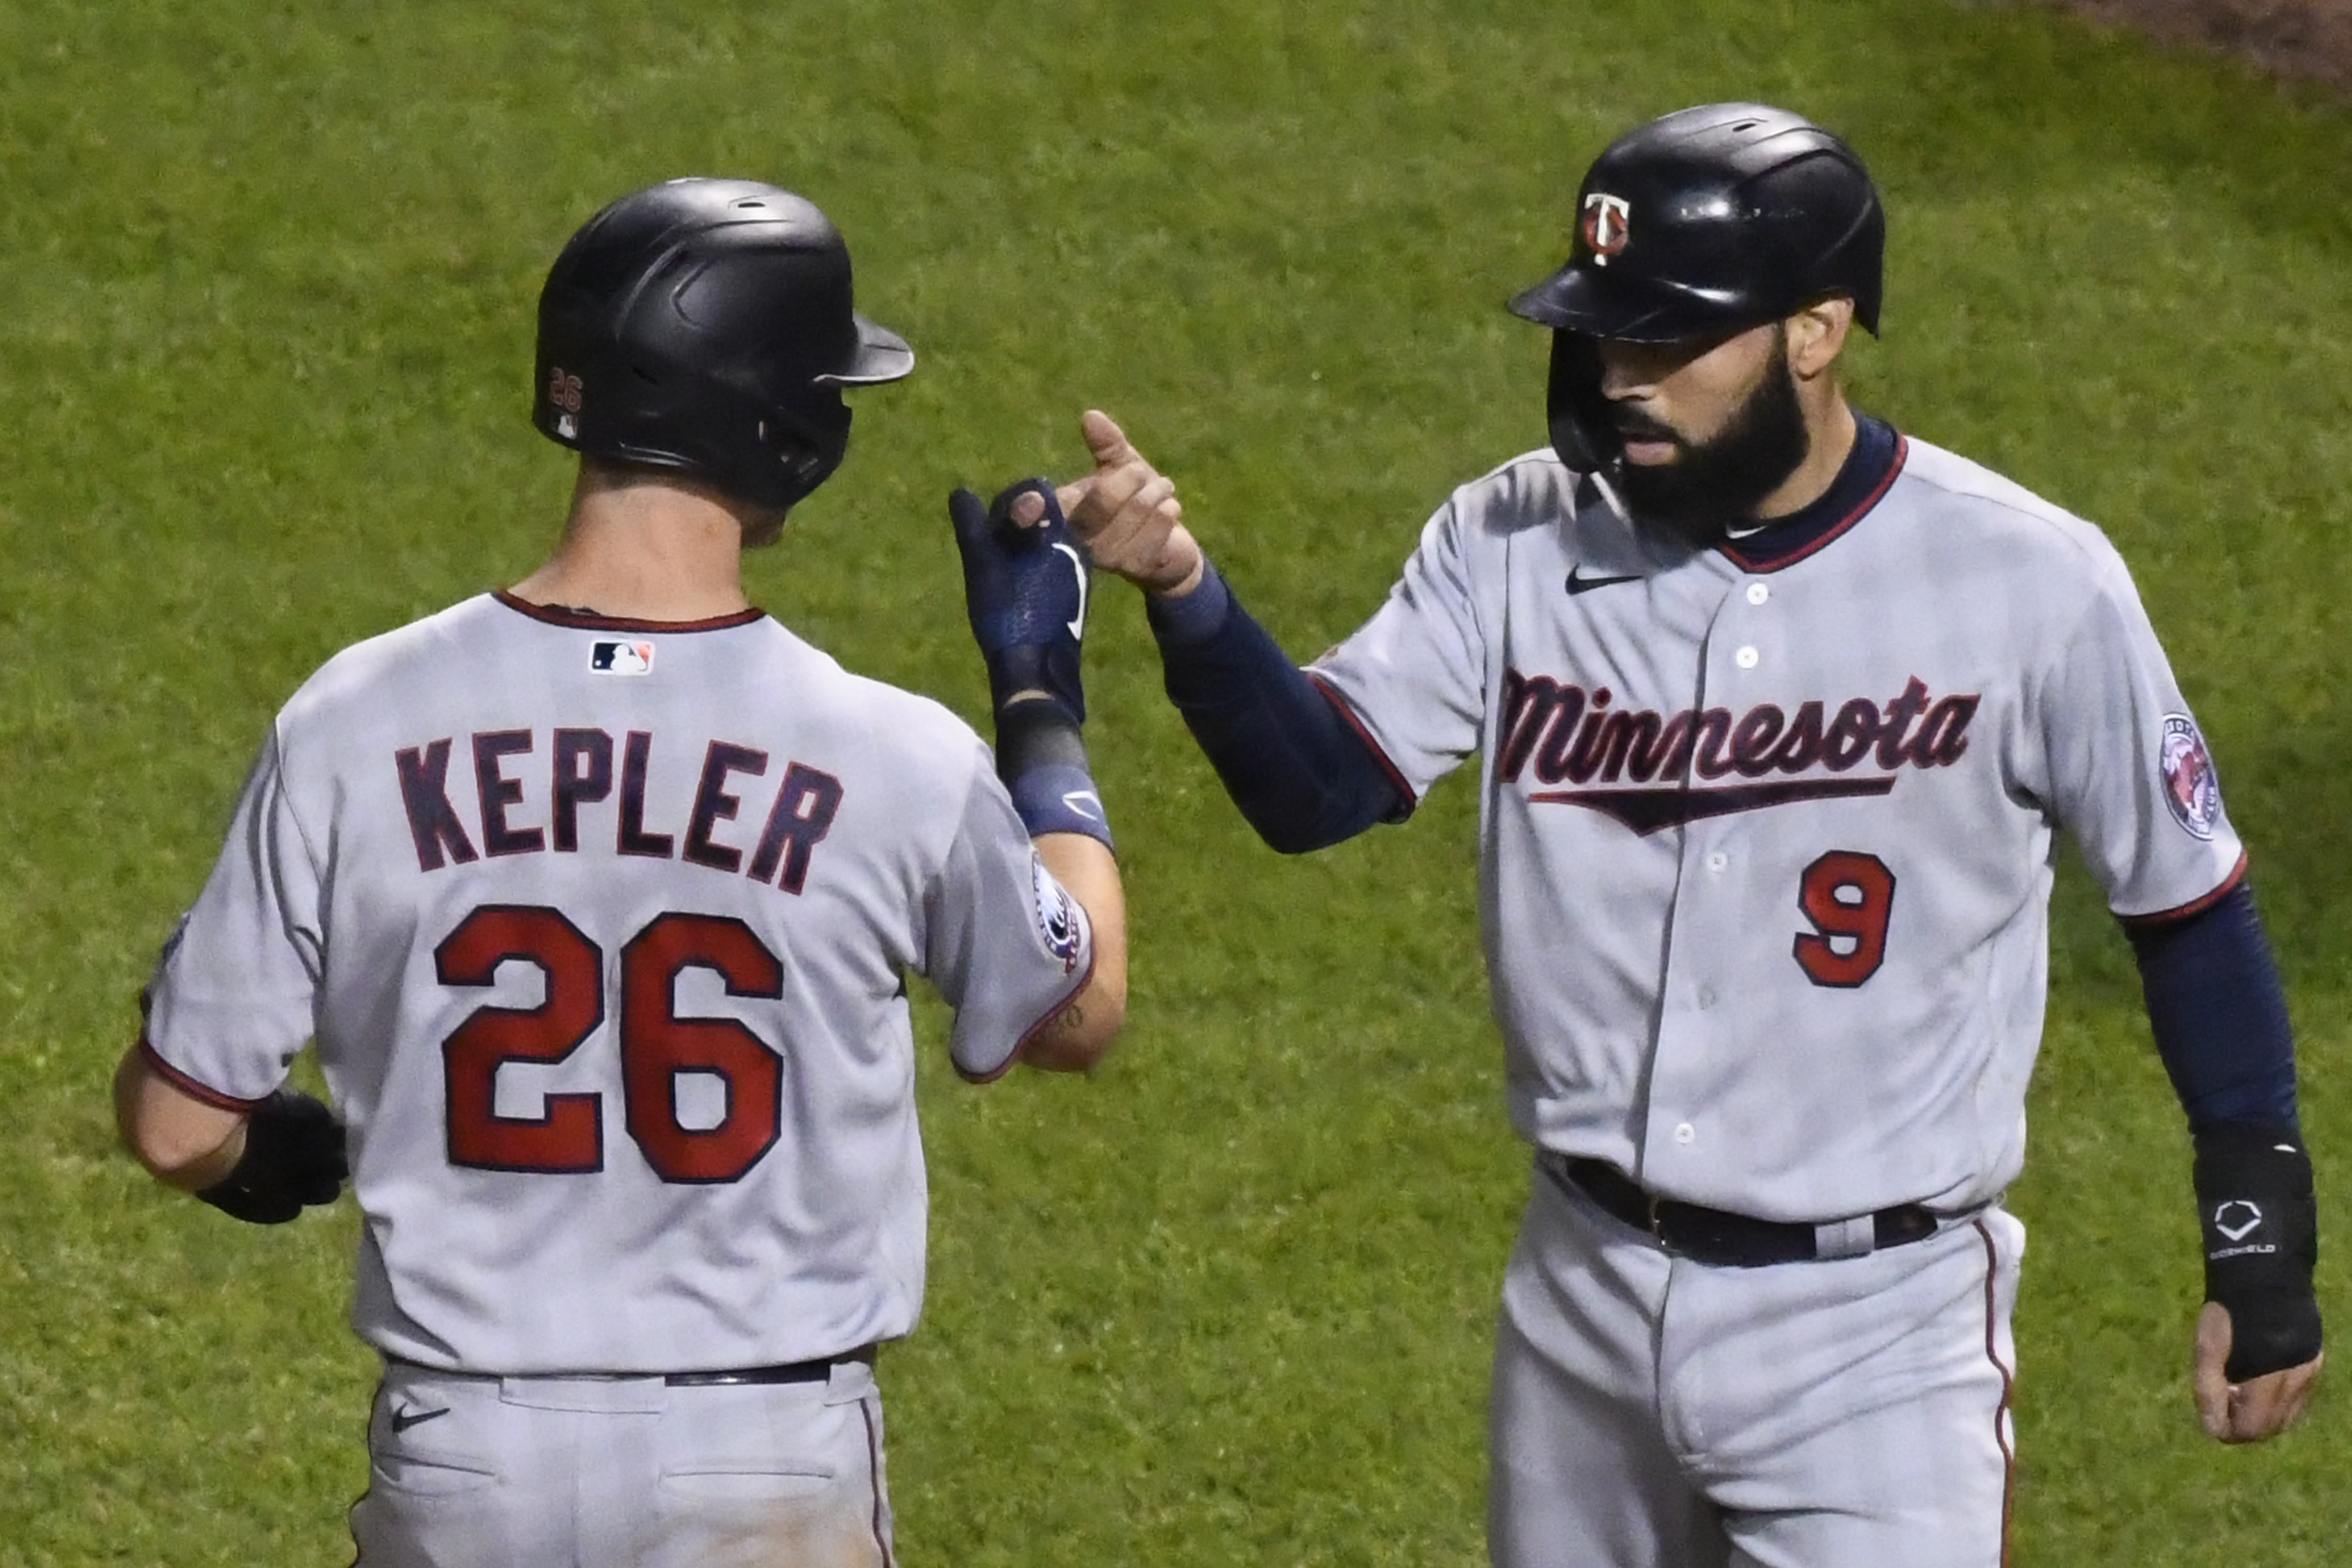 Minnesota Twins' Max Kepler (26) celebrates with Minnesota Twins' Marwin Gonzalez (9) after they scored on Kepler's two-run home run during the seventh inning of a baseball game against the Chicago Cubs Sunday, Sept. 20, 2020, in Chicago. (AP Photo/Matt Marton)